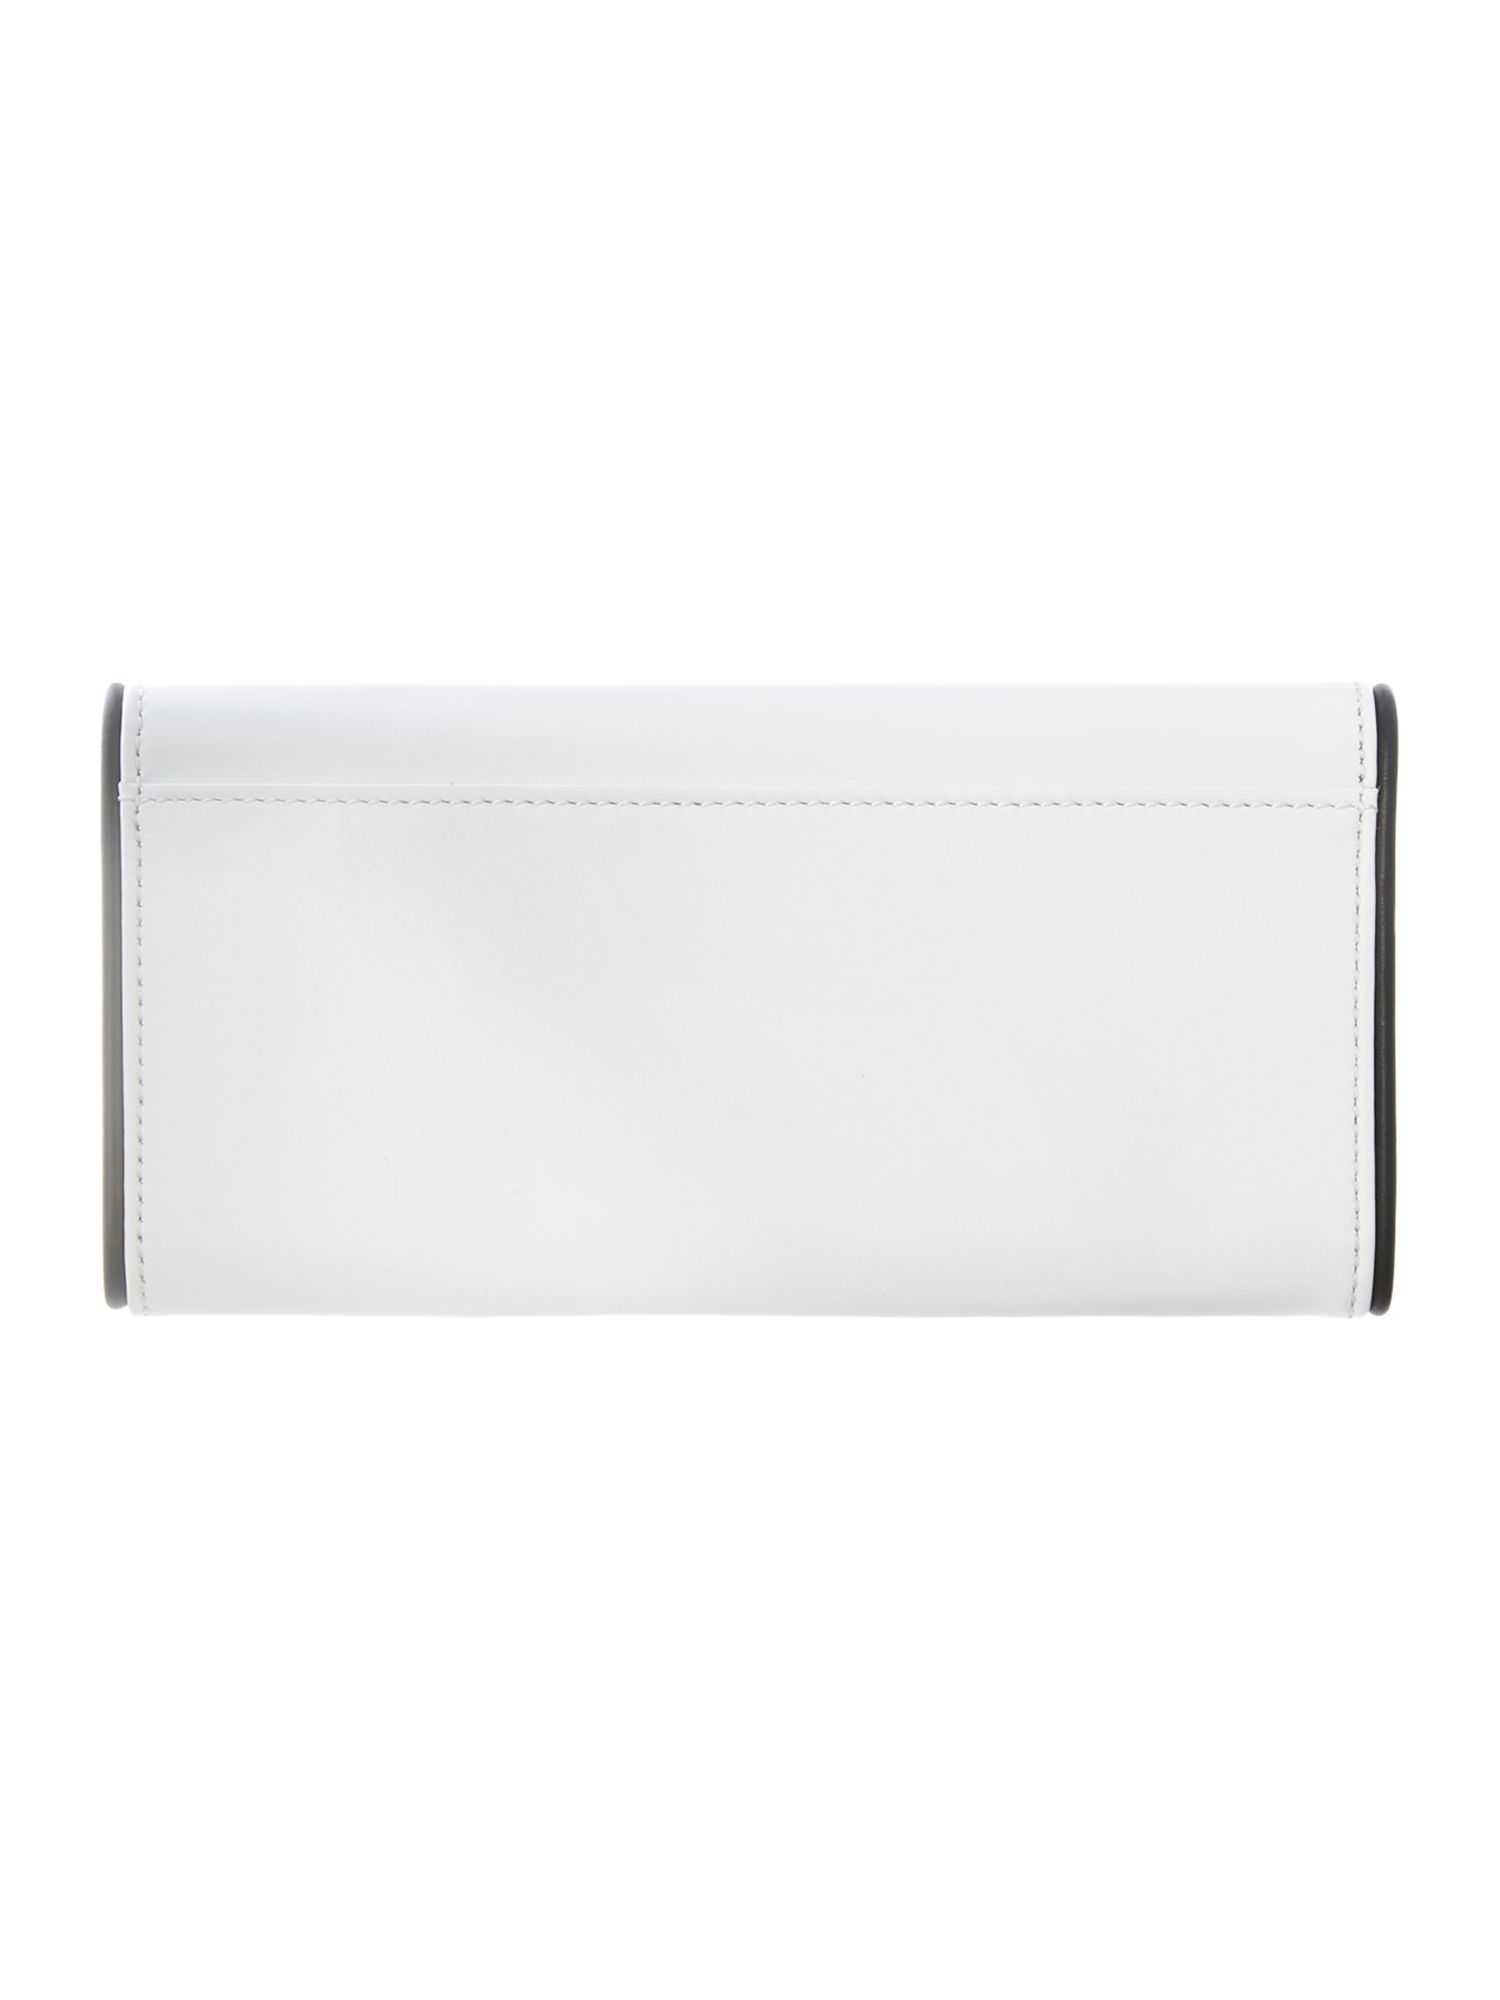 White and black flapover purse